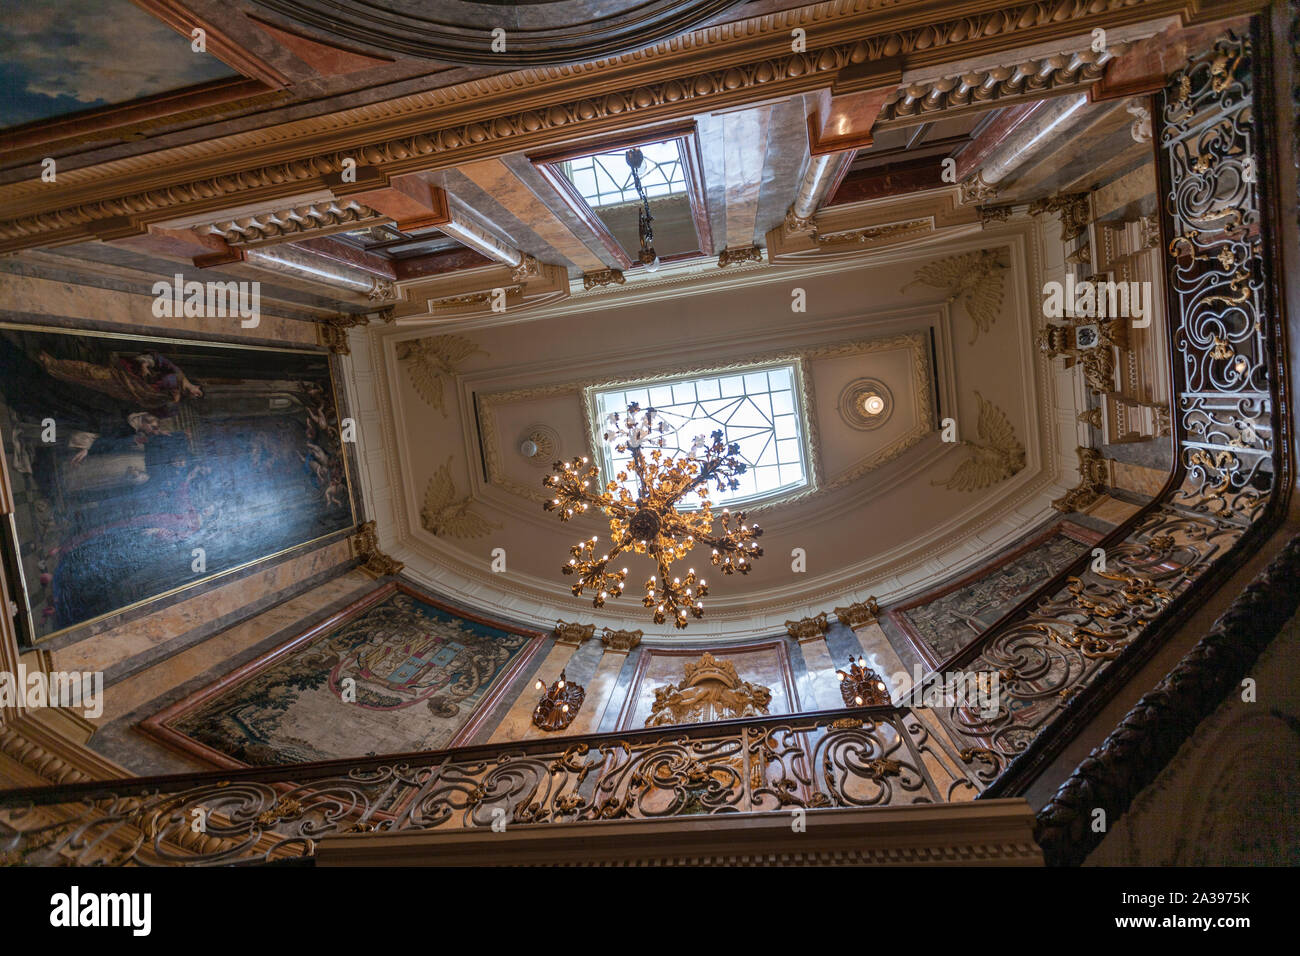 Main Doorway and Main Staircase of Museo Cerralbo, Madrid, Spain Stock Photo